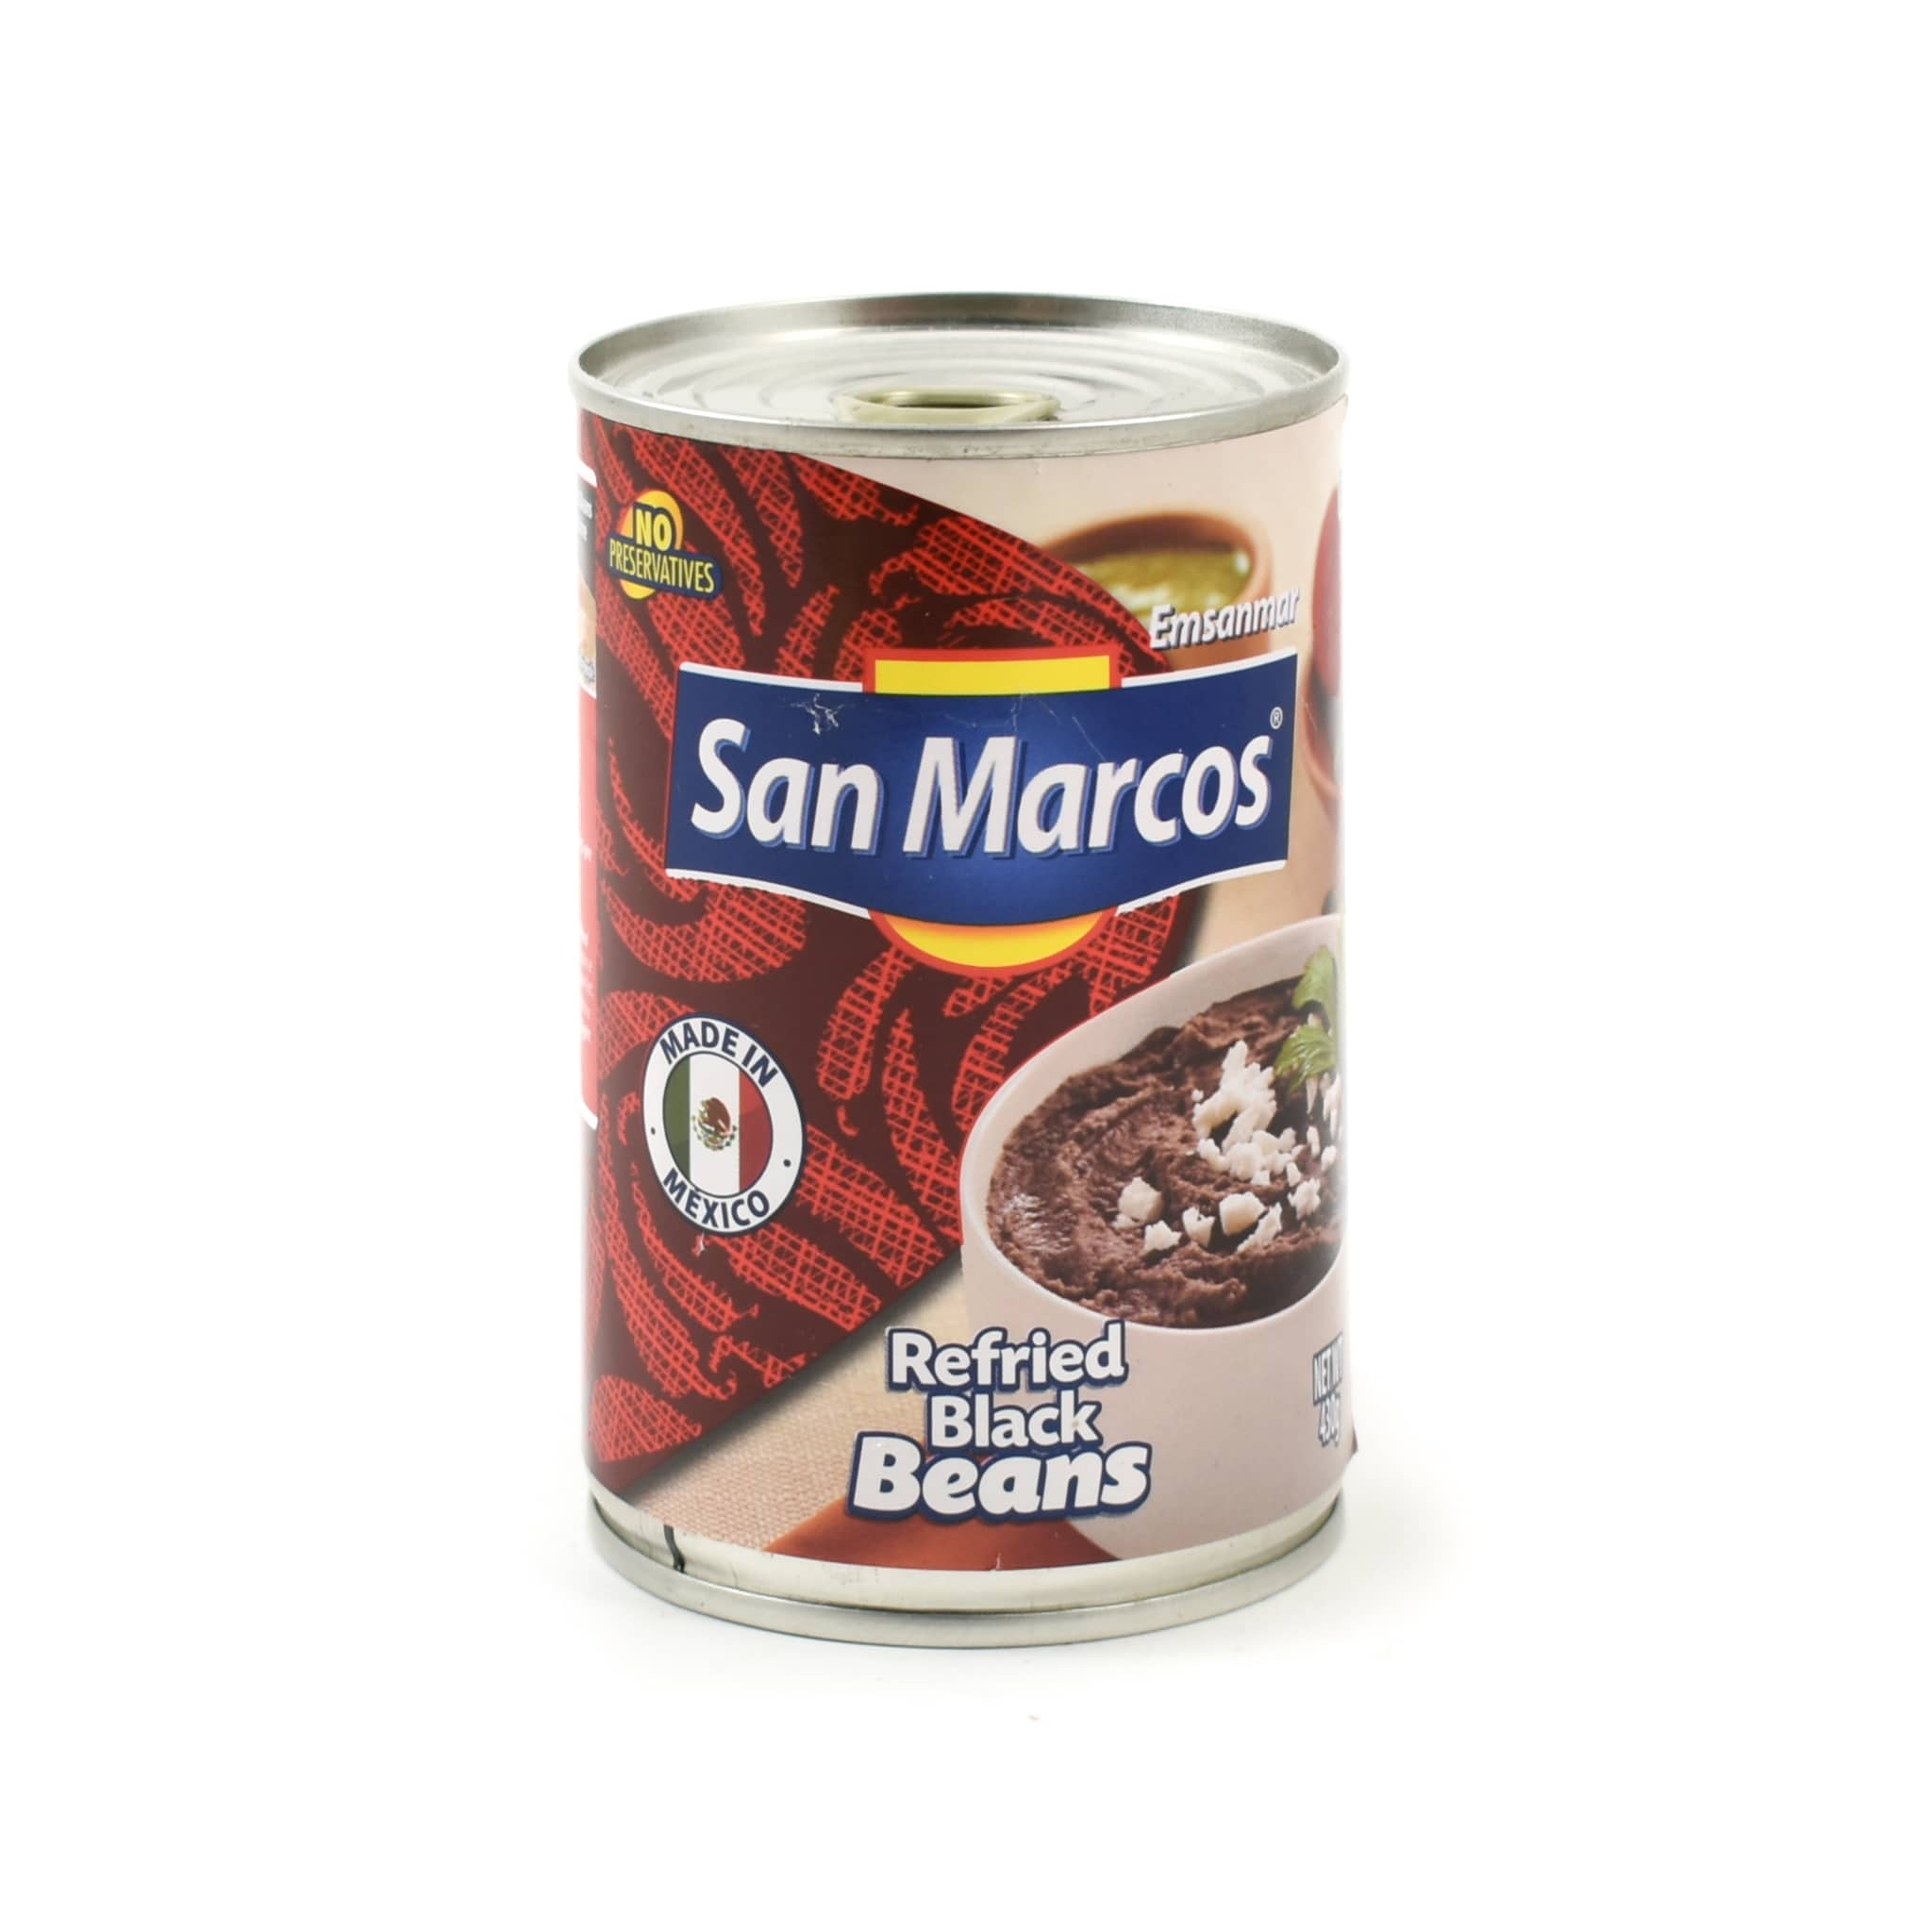 San Marcos Frijoles Refritos Negros Refried Beans 430g Mexican Food and Cooking